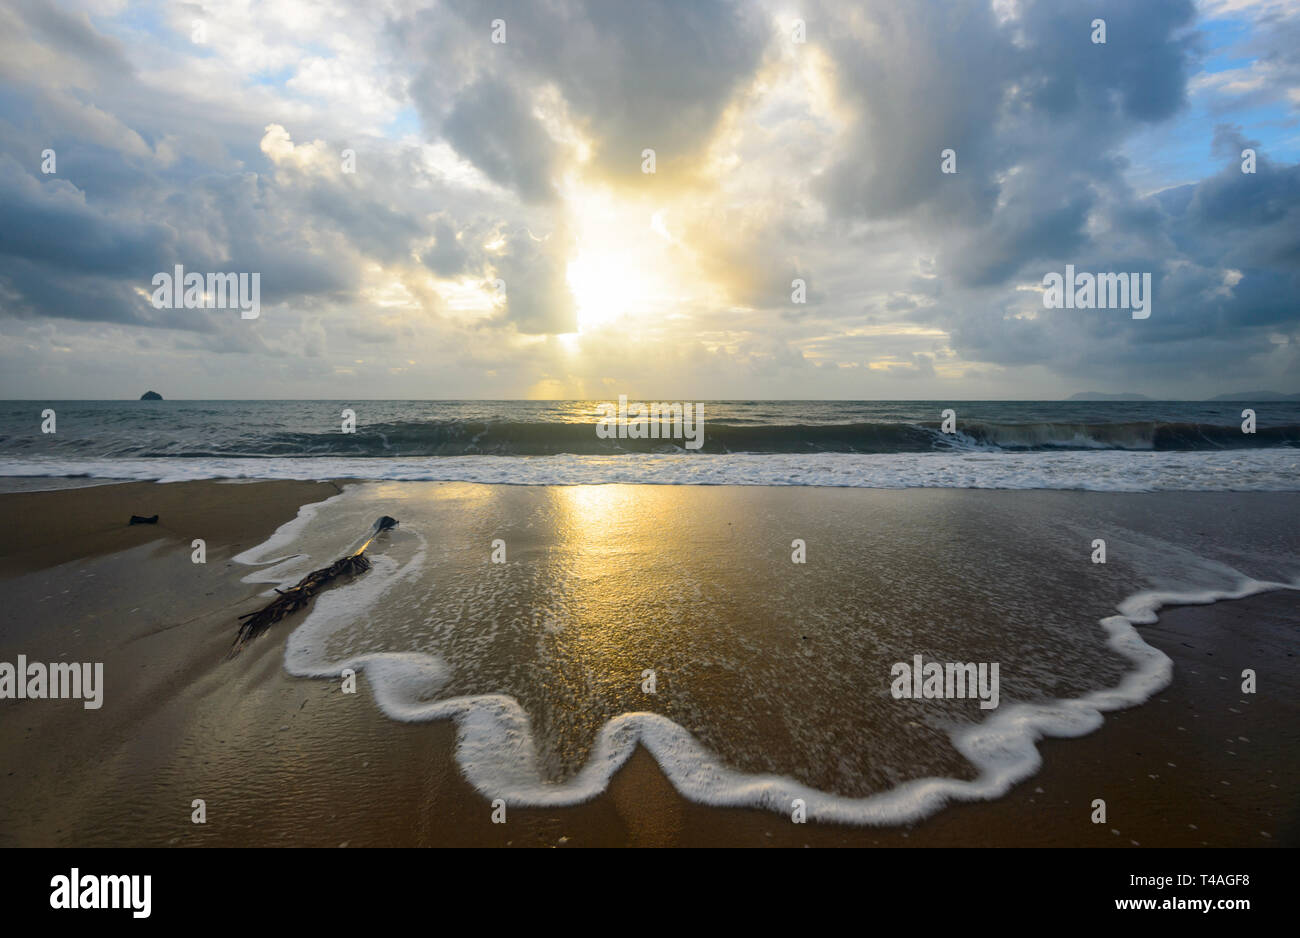 Gentle waves spume at sunrise, Palm Cove, Cairns Northern Beaches, Far North Queensland, FNQ, QLD, Australia - Stock Image